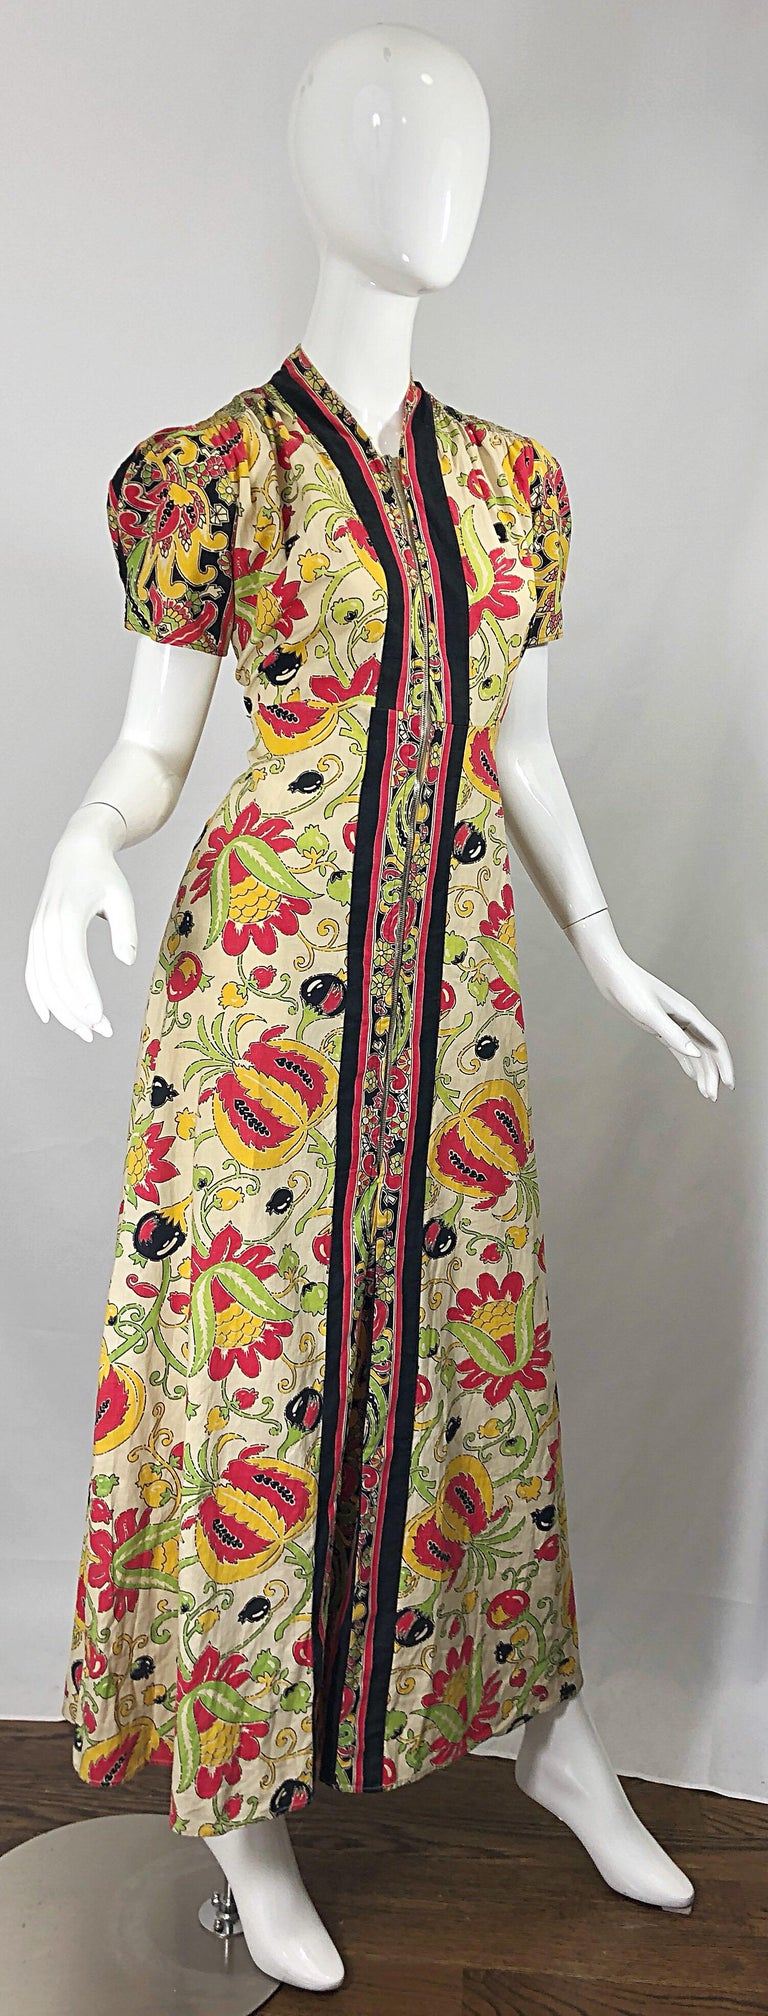 Women's Amazing 1940s Botanical Asian Inspired Paisley Cotton + Linen 40s Maxi Dress For Sale